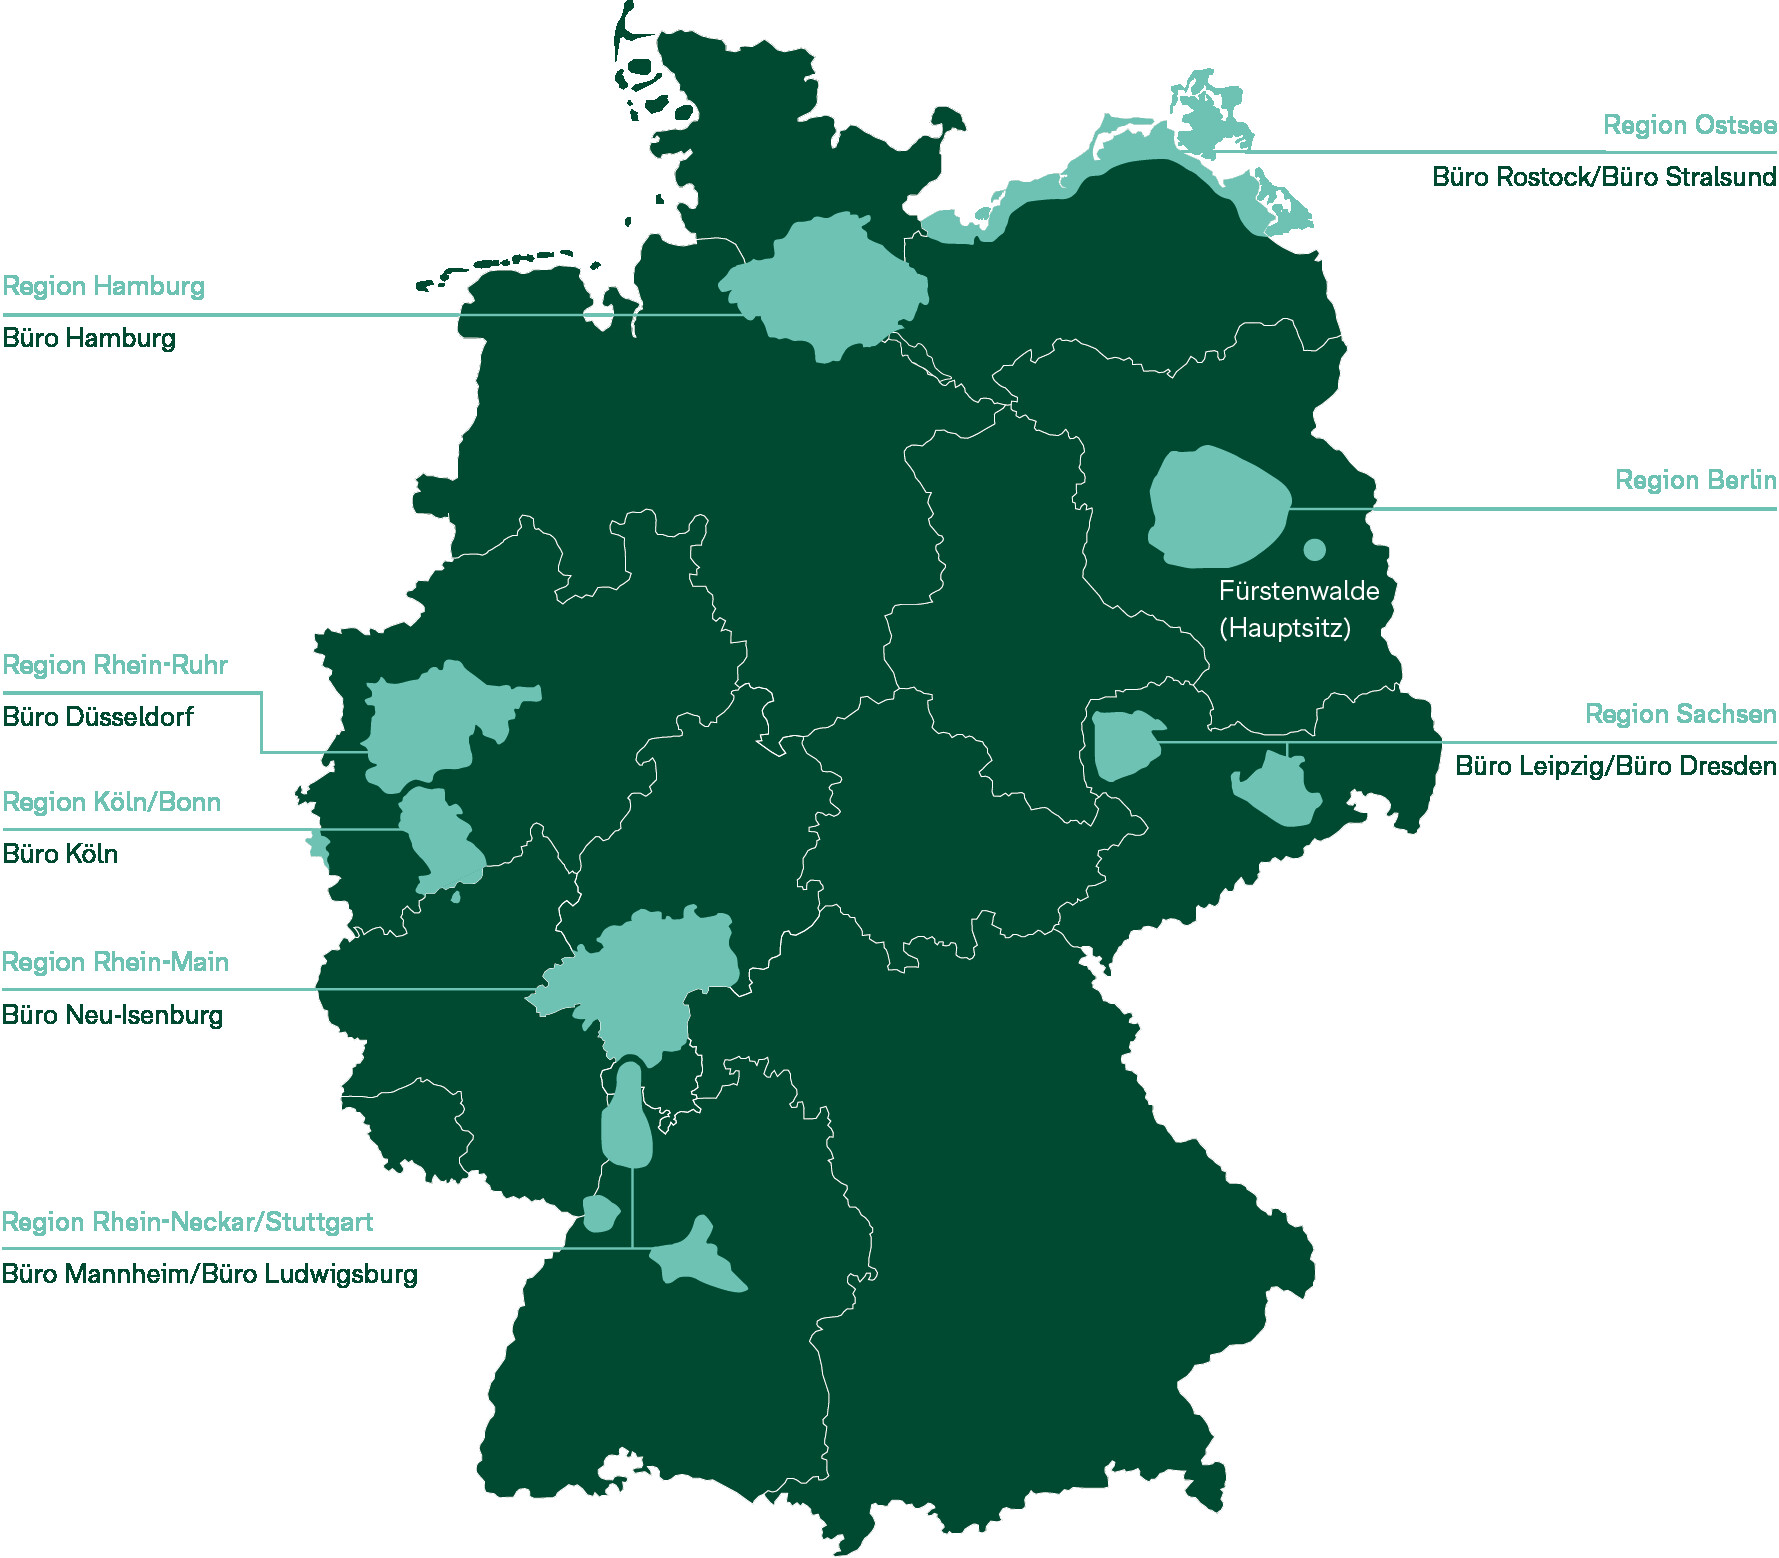 contentassets/0982934475994ae896e7b30207179f47/map_germany_with_text.png